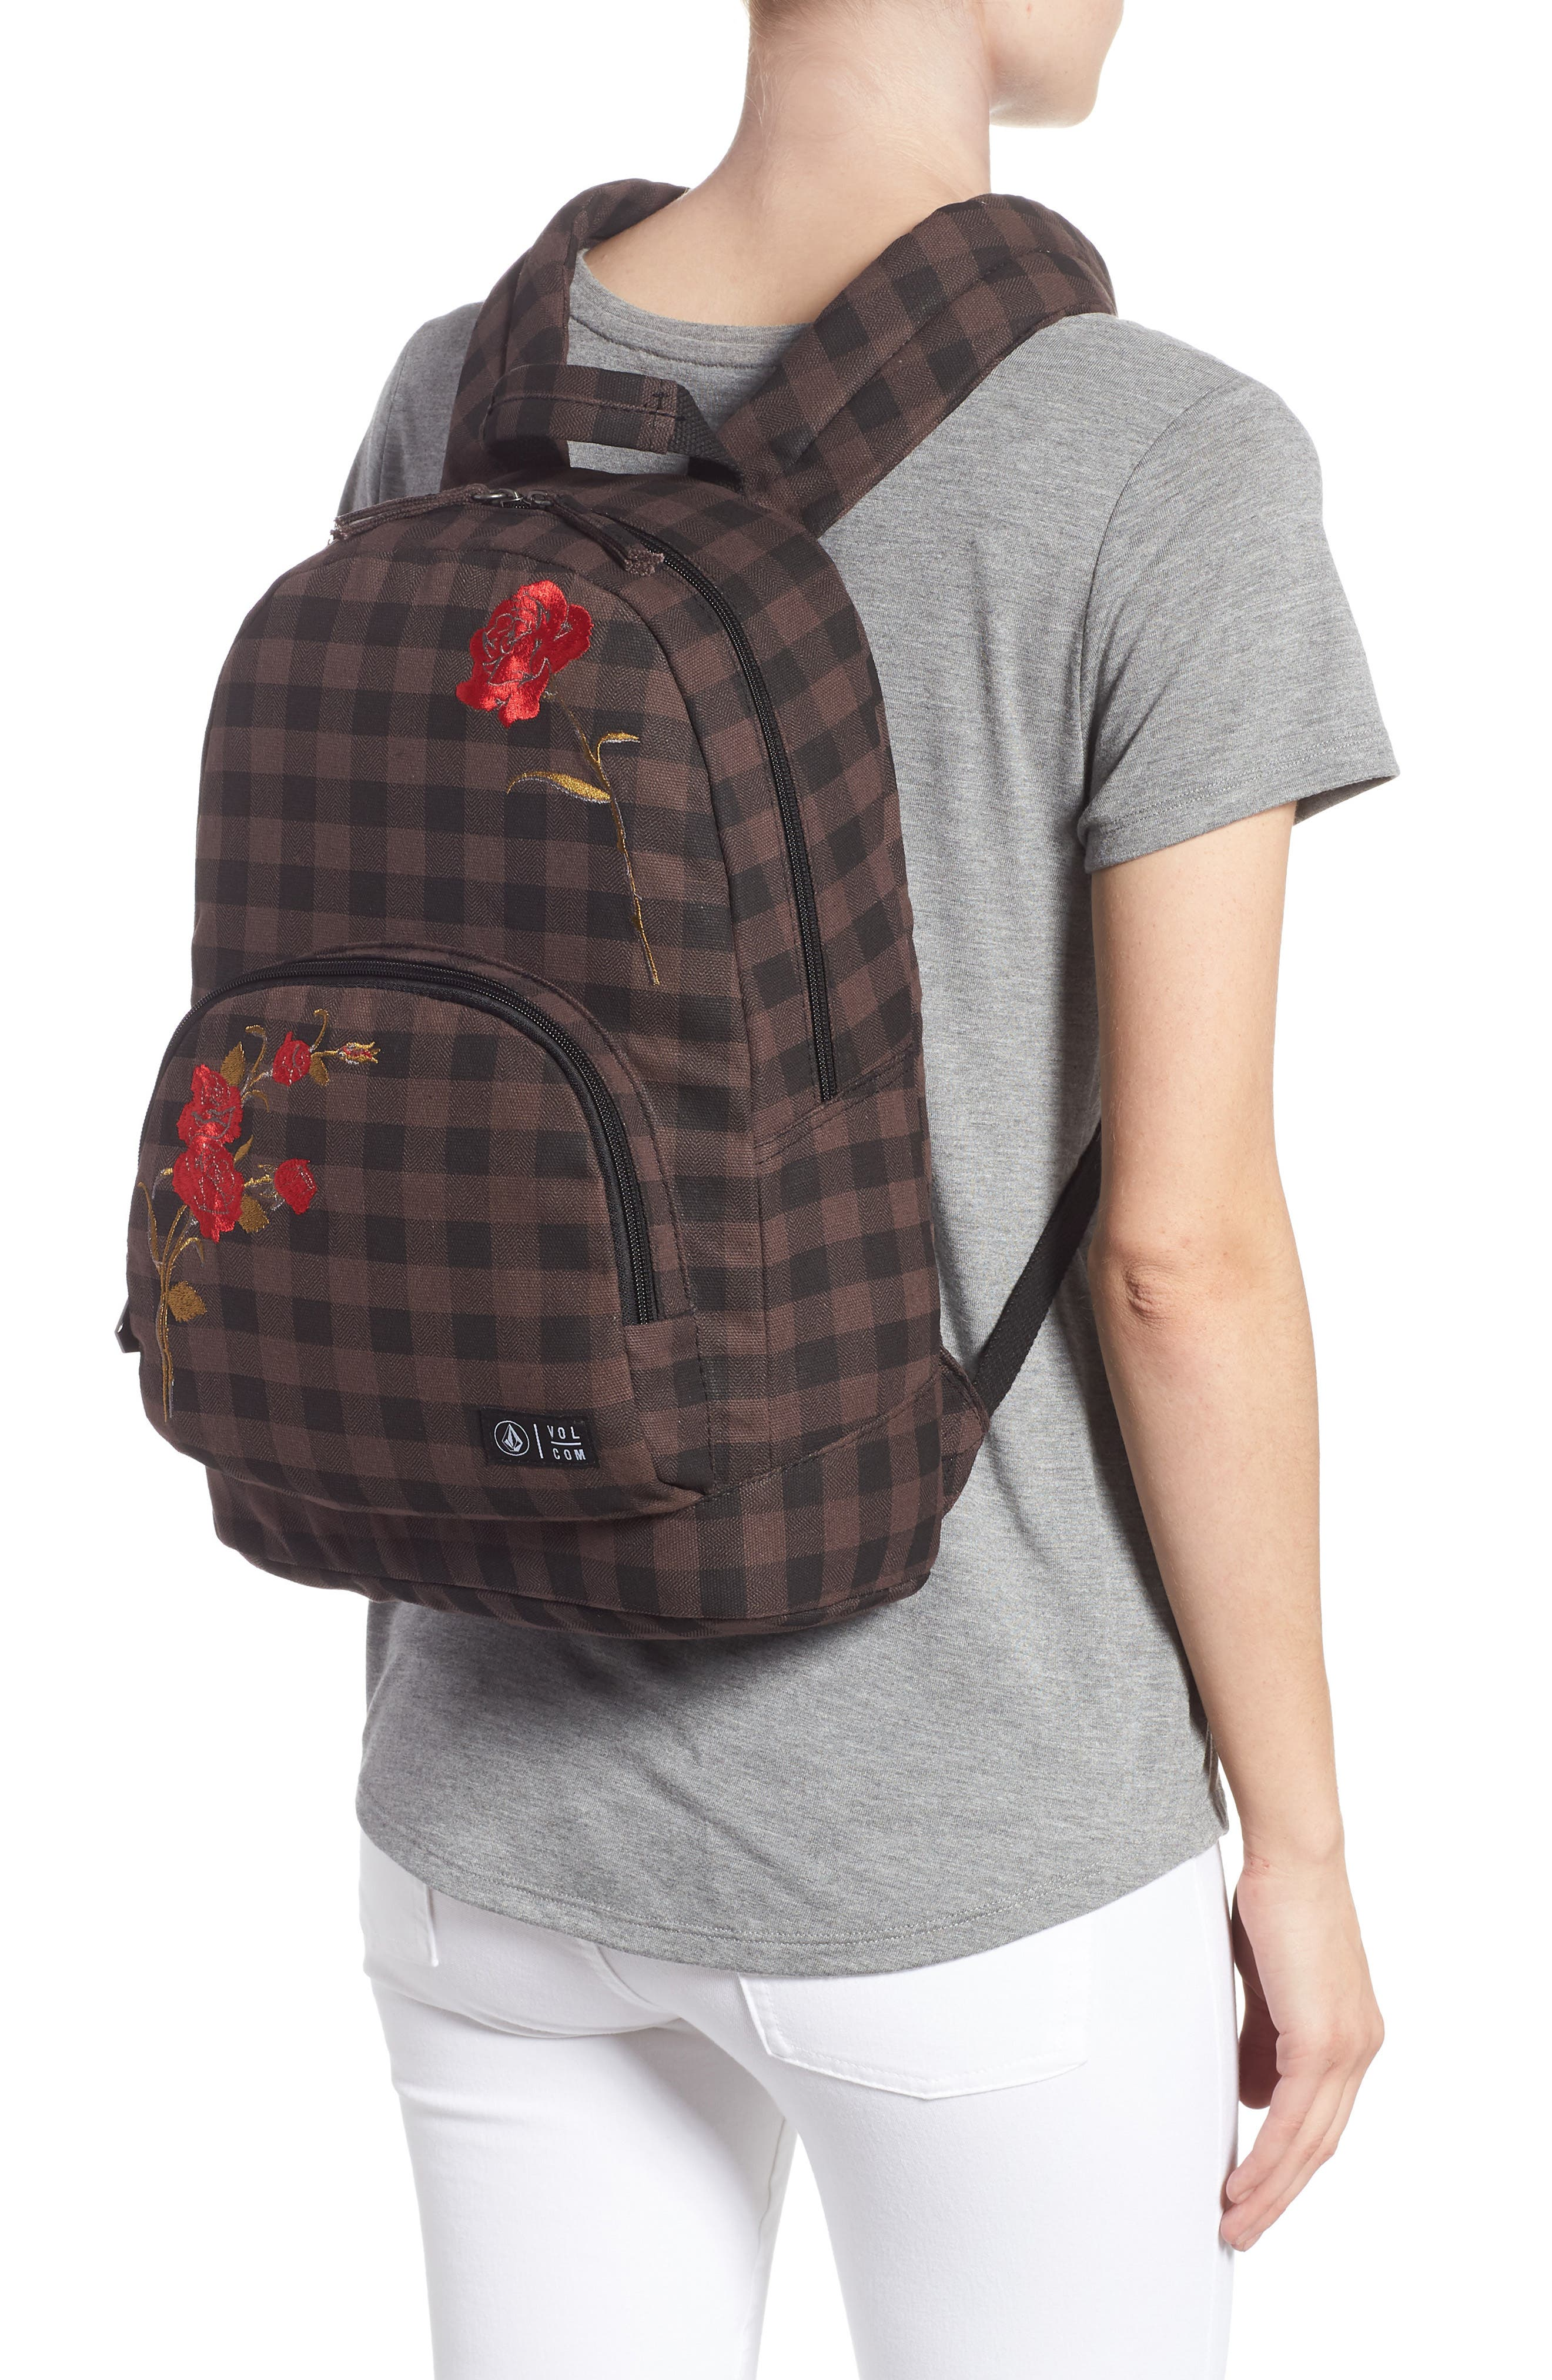 Schoolyard Canvas Backpack,                             Alternate thumbnail 2, color,                             200